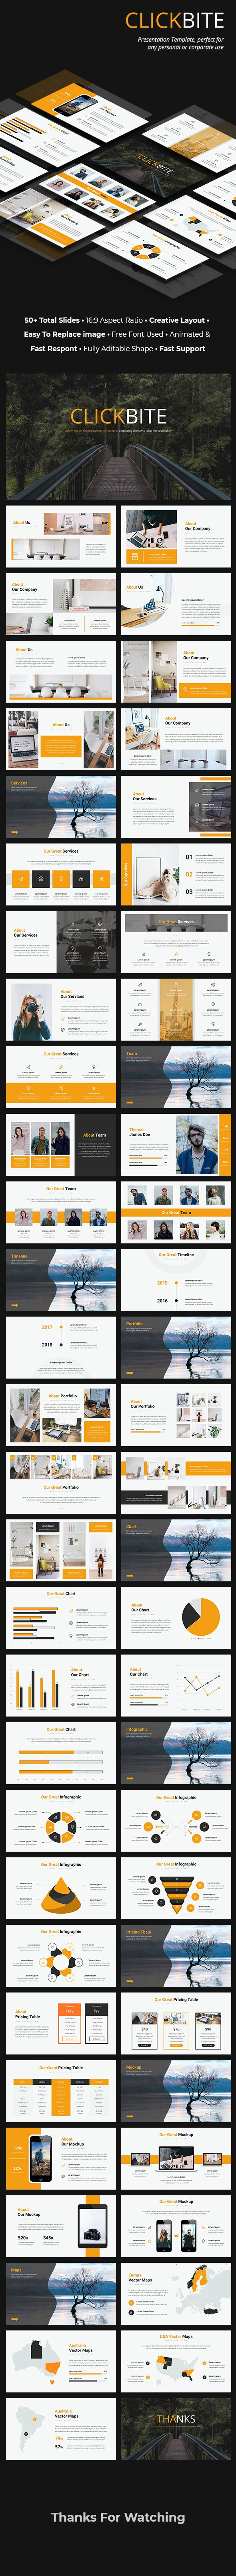 clickbite creative powerpoint template 90 total slides animated